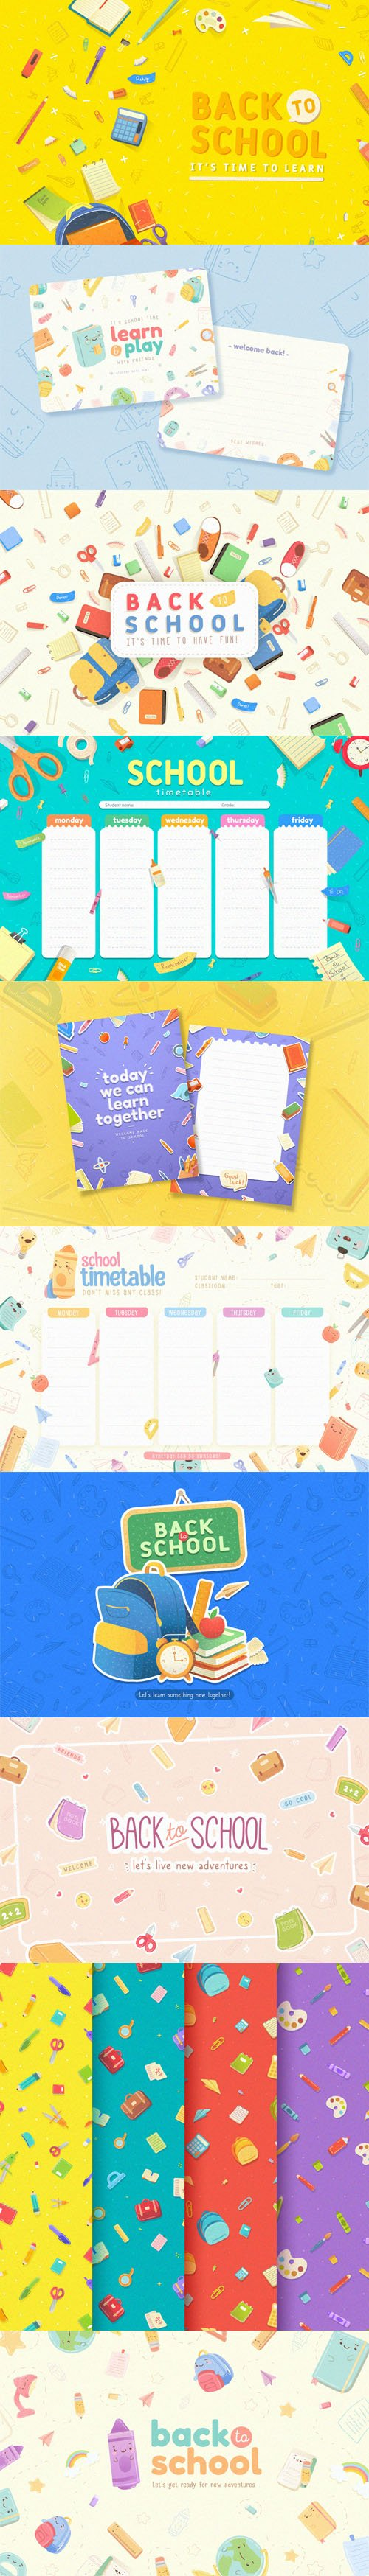 Back to School Vector Templates Collection